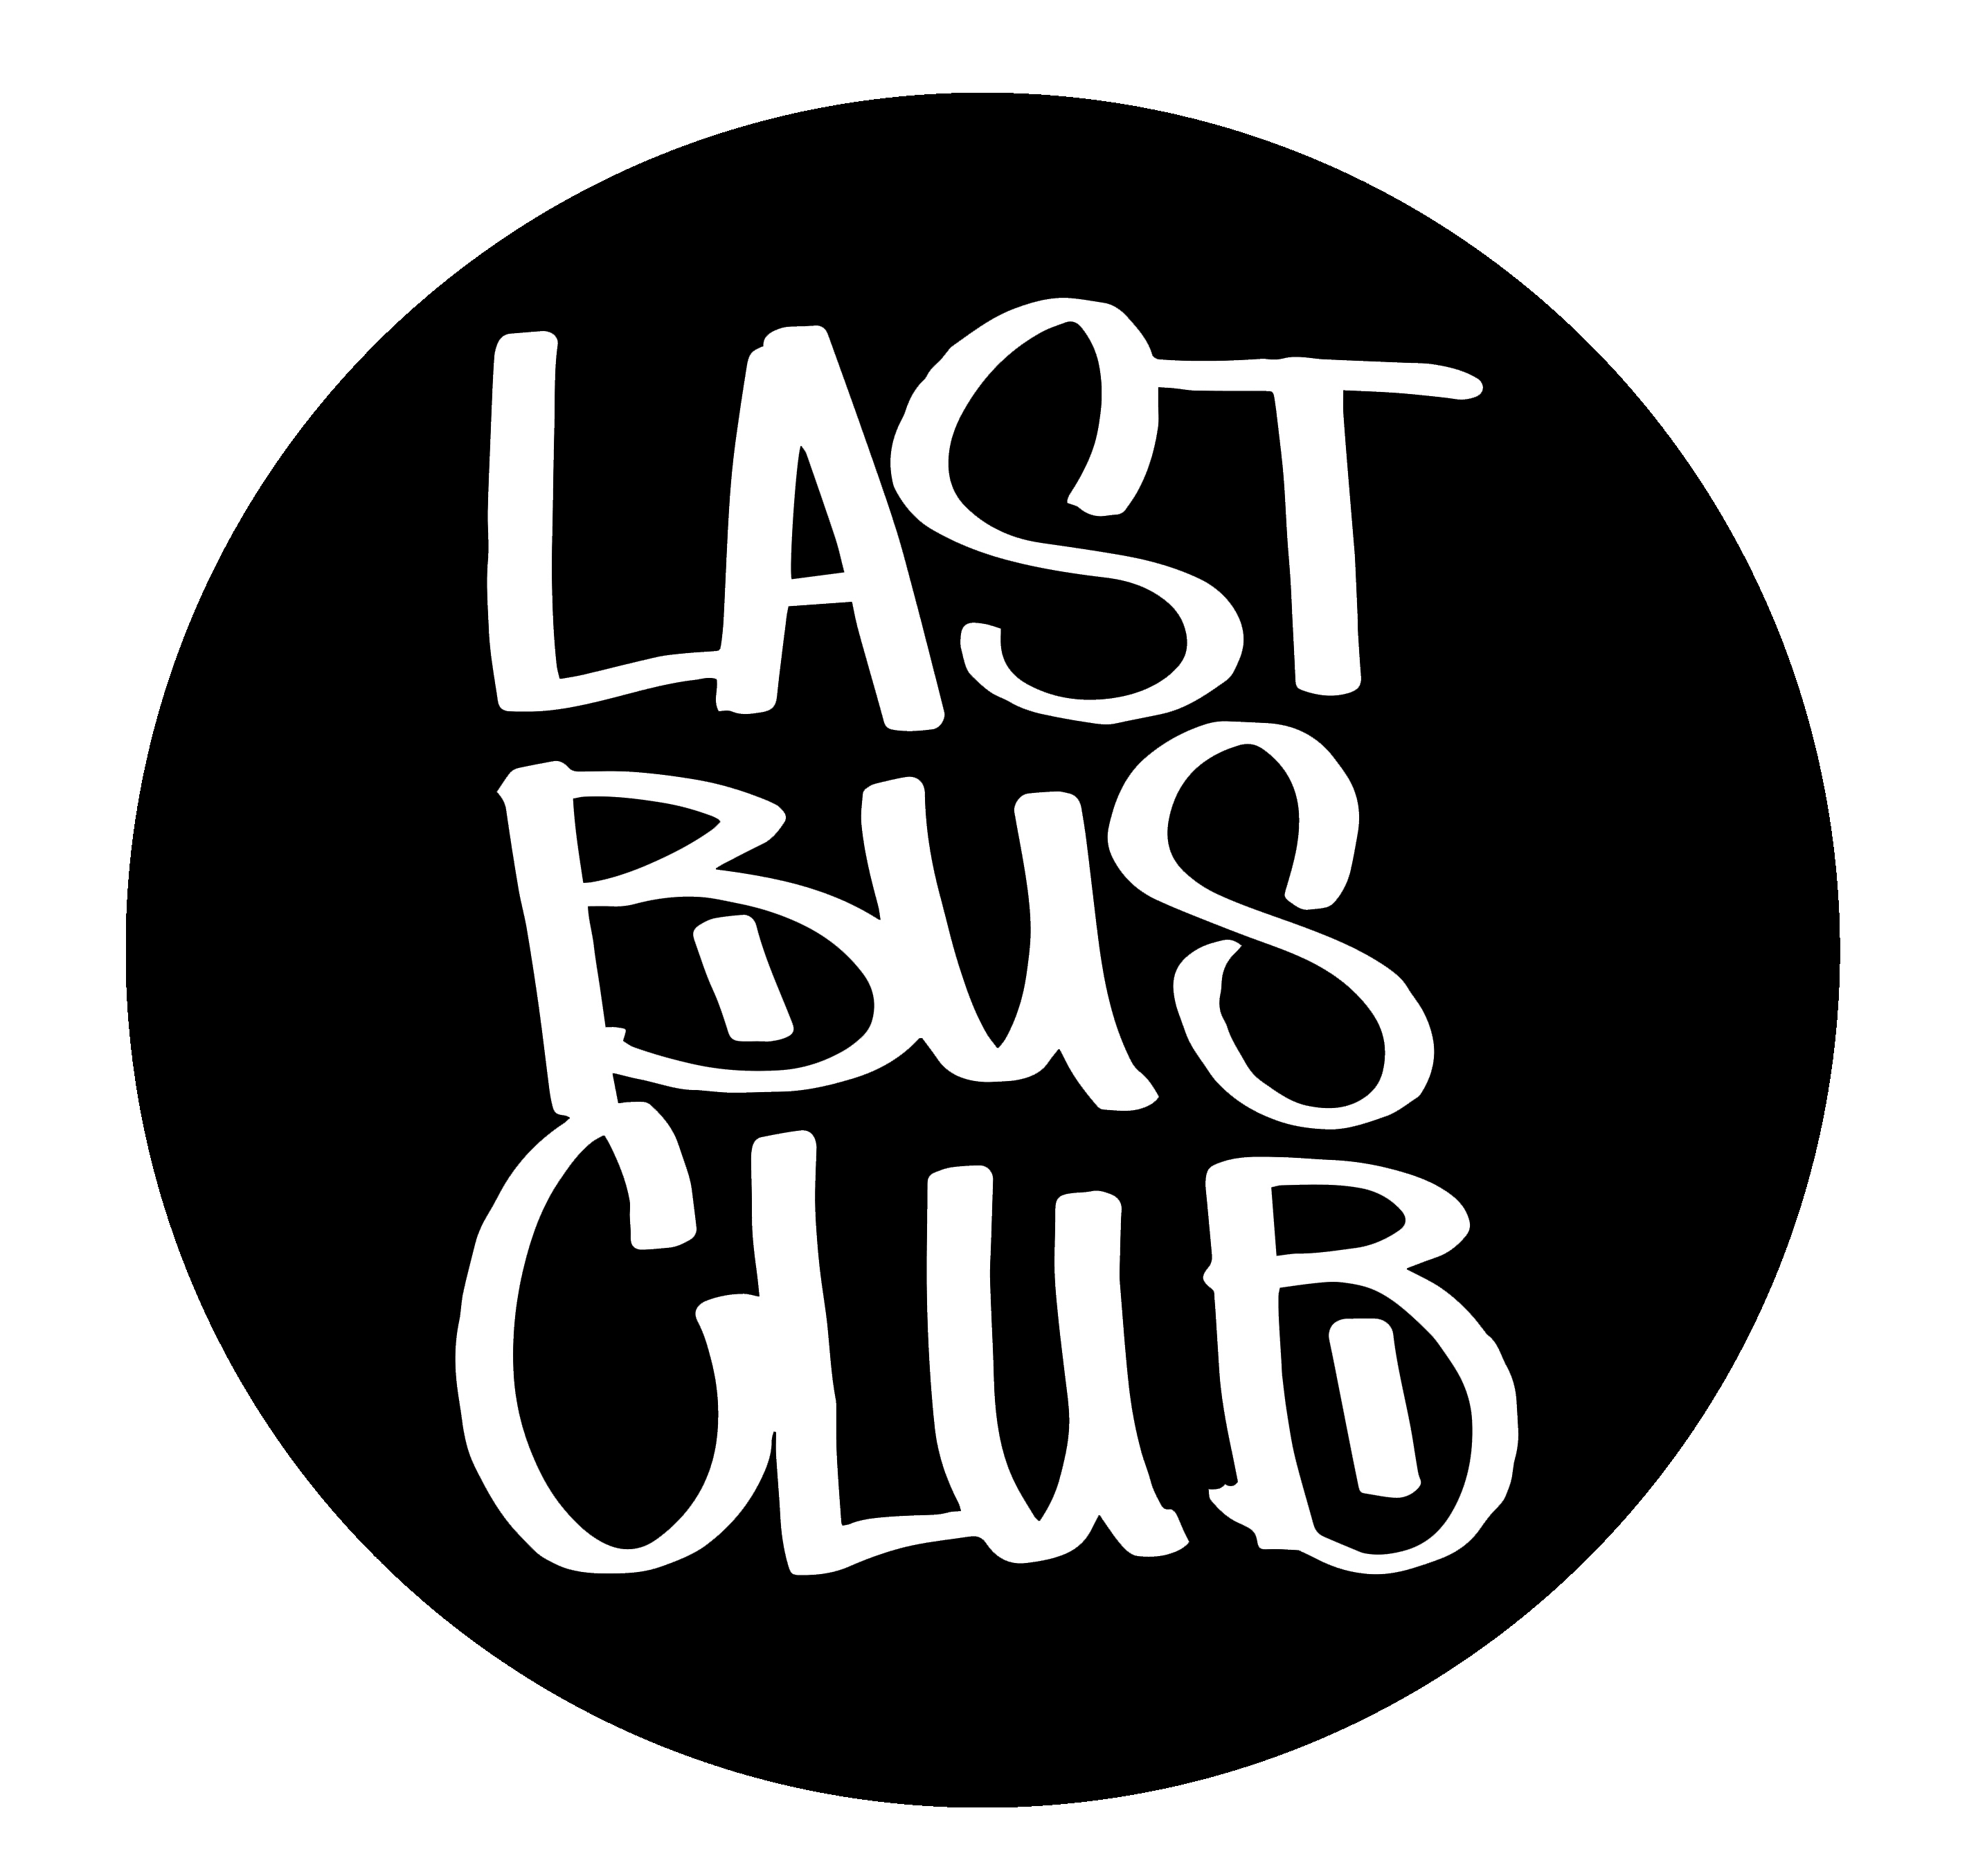 Last Bus Club Clothing